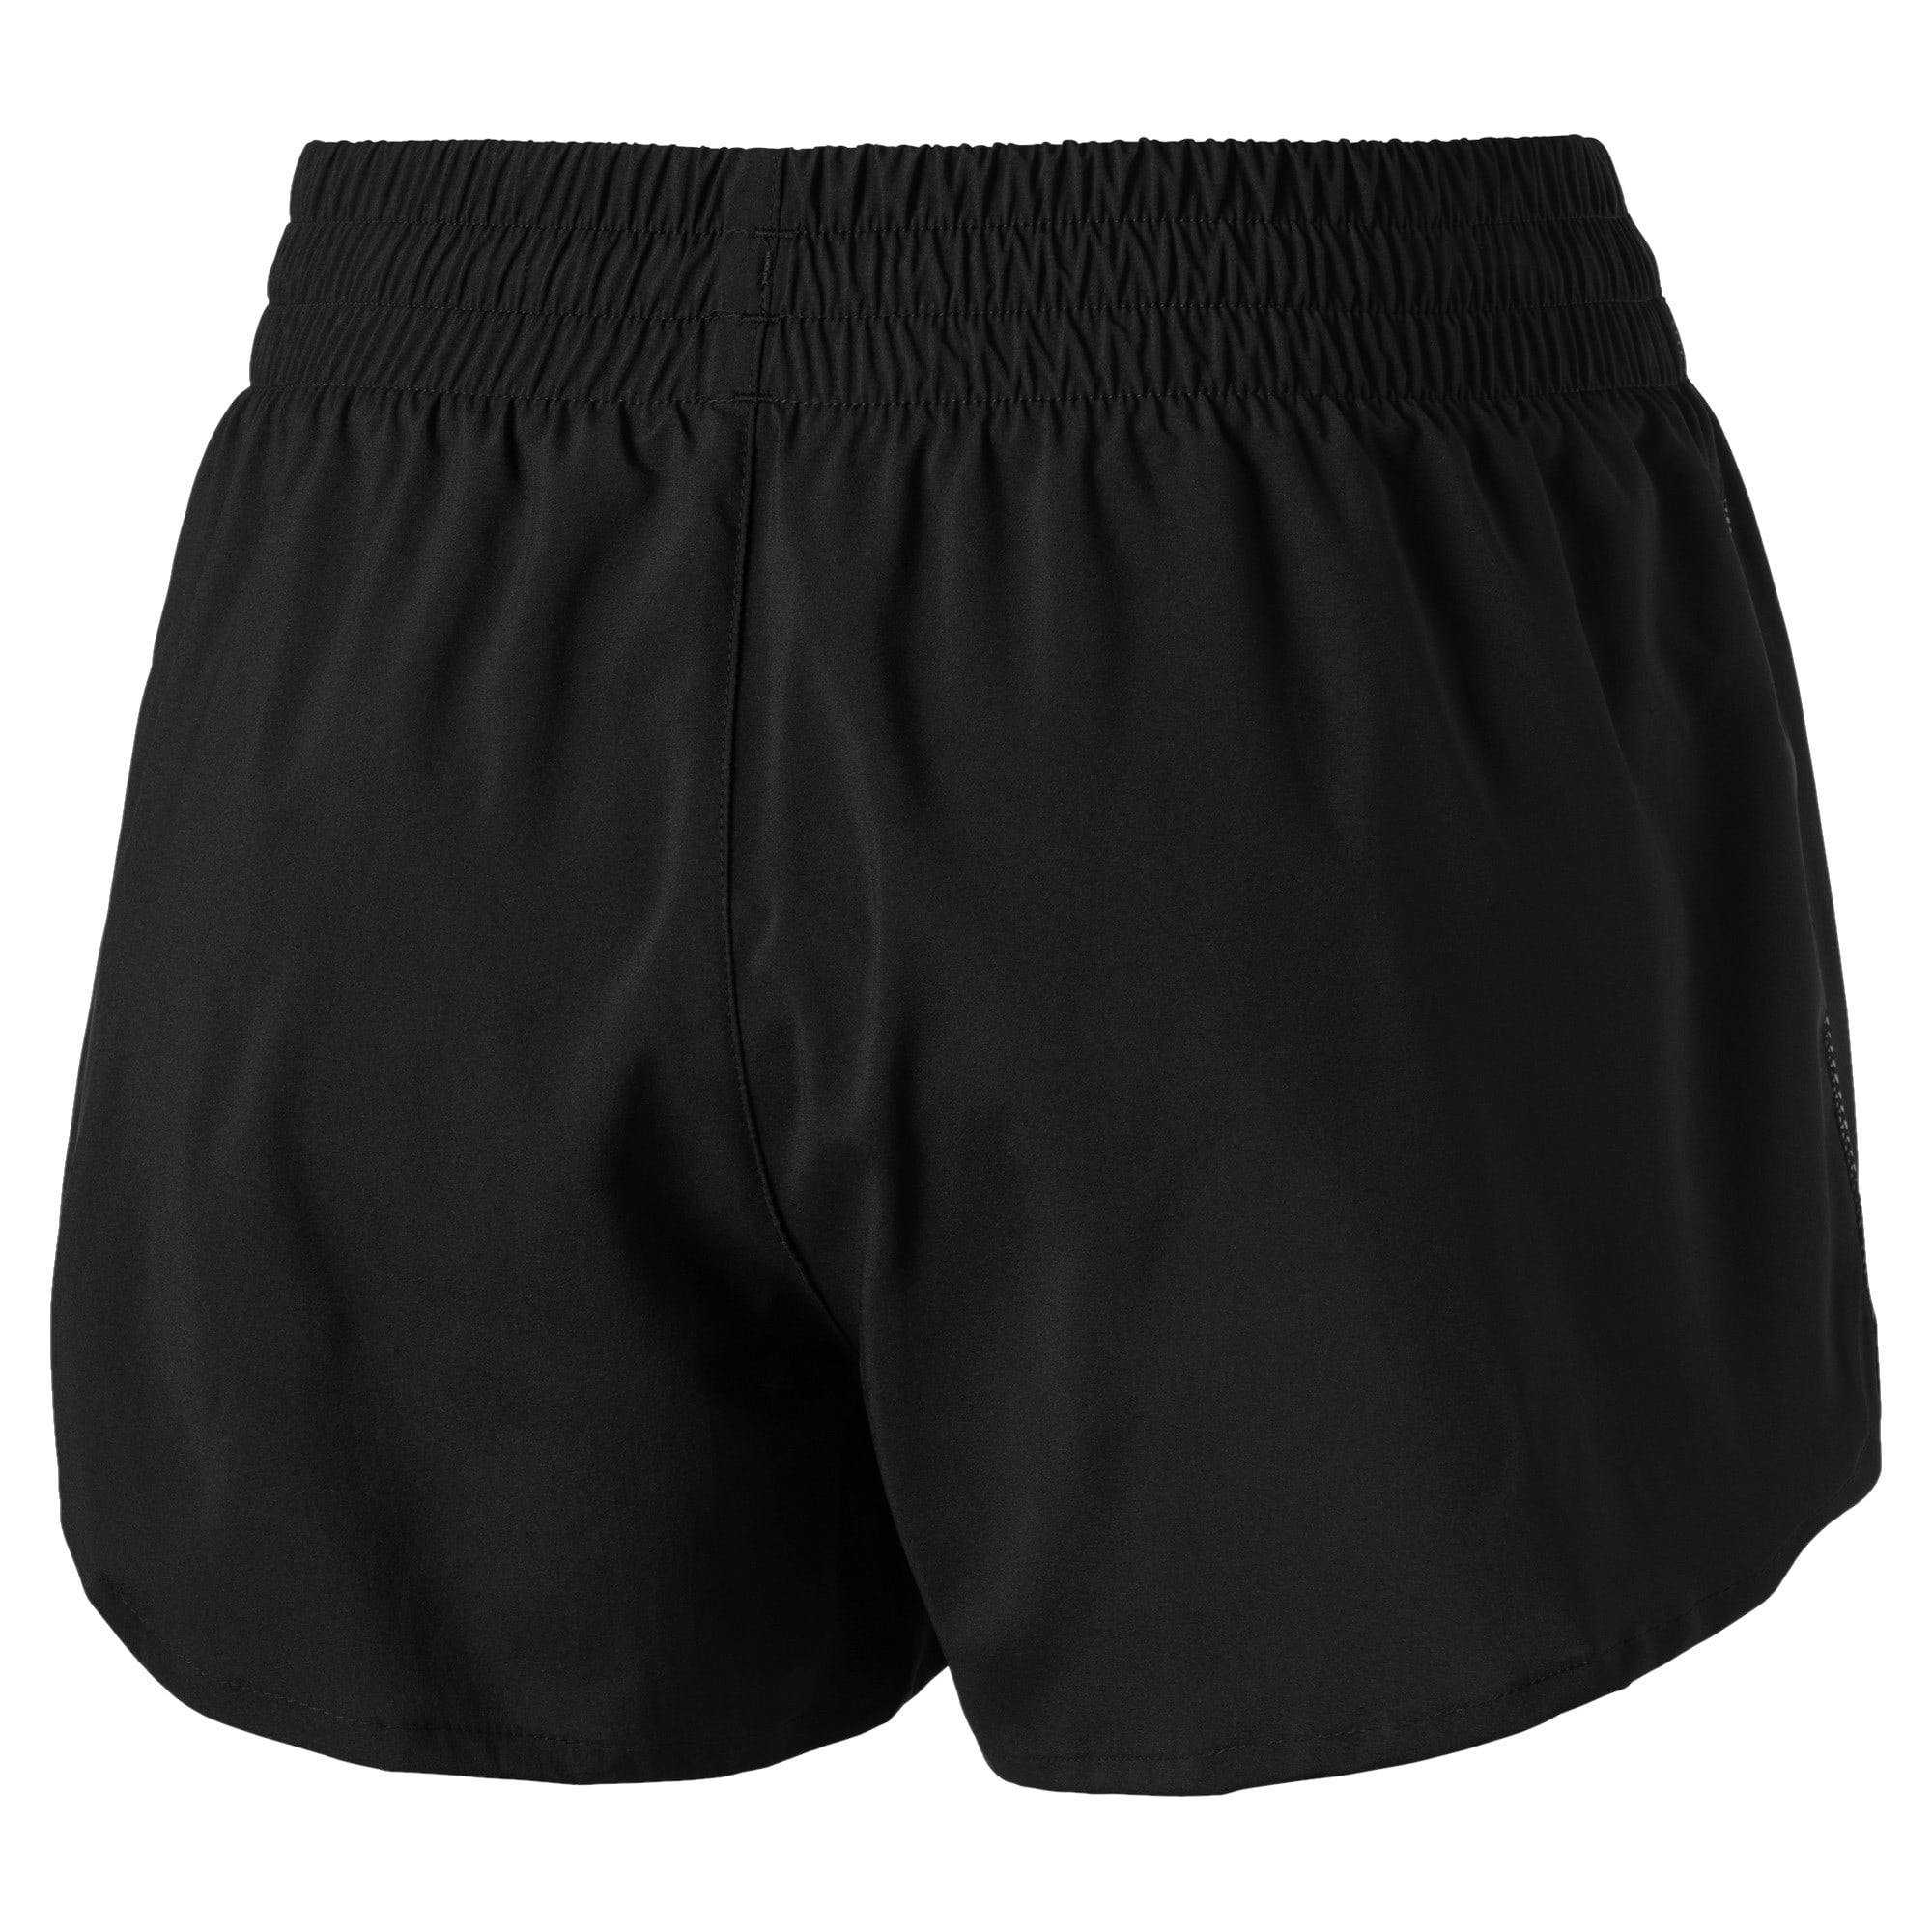 Thumbnail 5 of Keep Up Damen Kurze Shorts, Puma Black, medium